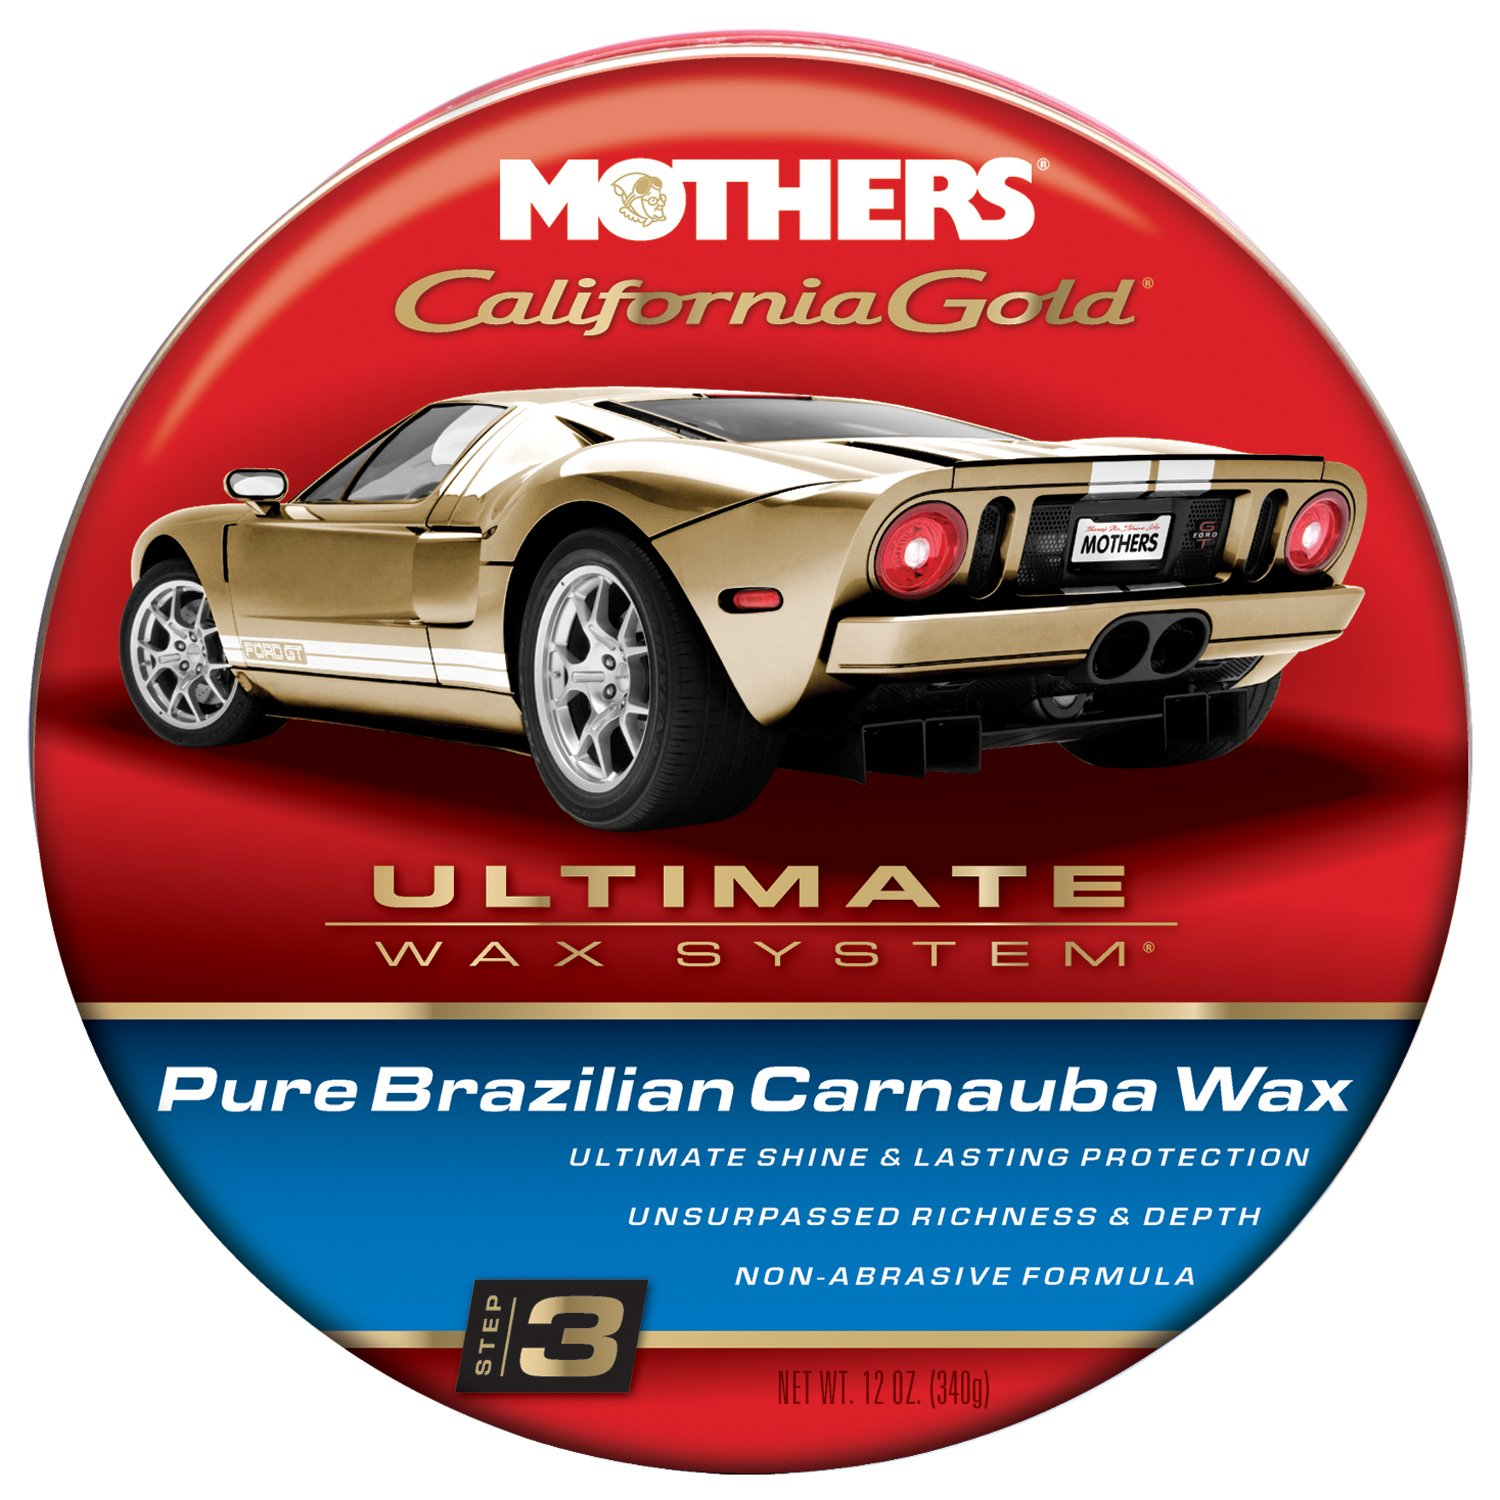 mothers-05550-california-gold-pure-brazilian-carnauba-wax-paste-ultimate-wax-system-step-3-12-oz-best-car-clean-wash-products-reviews